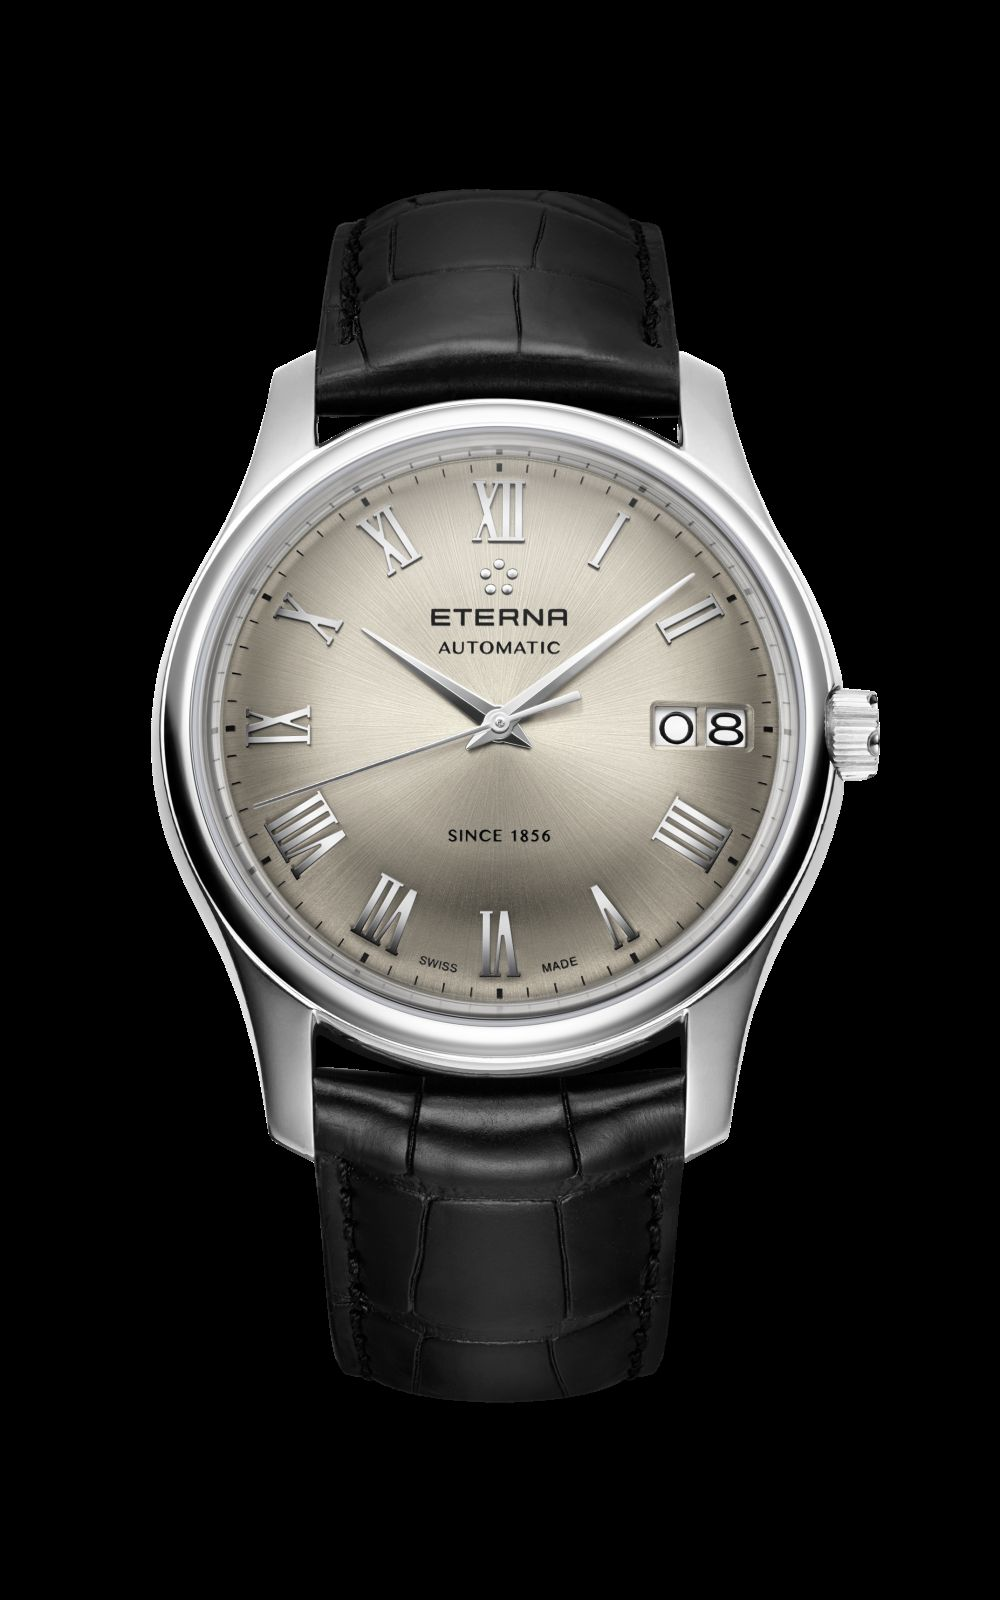 Eterna-Granges-1856-Watch-5.jpg